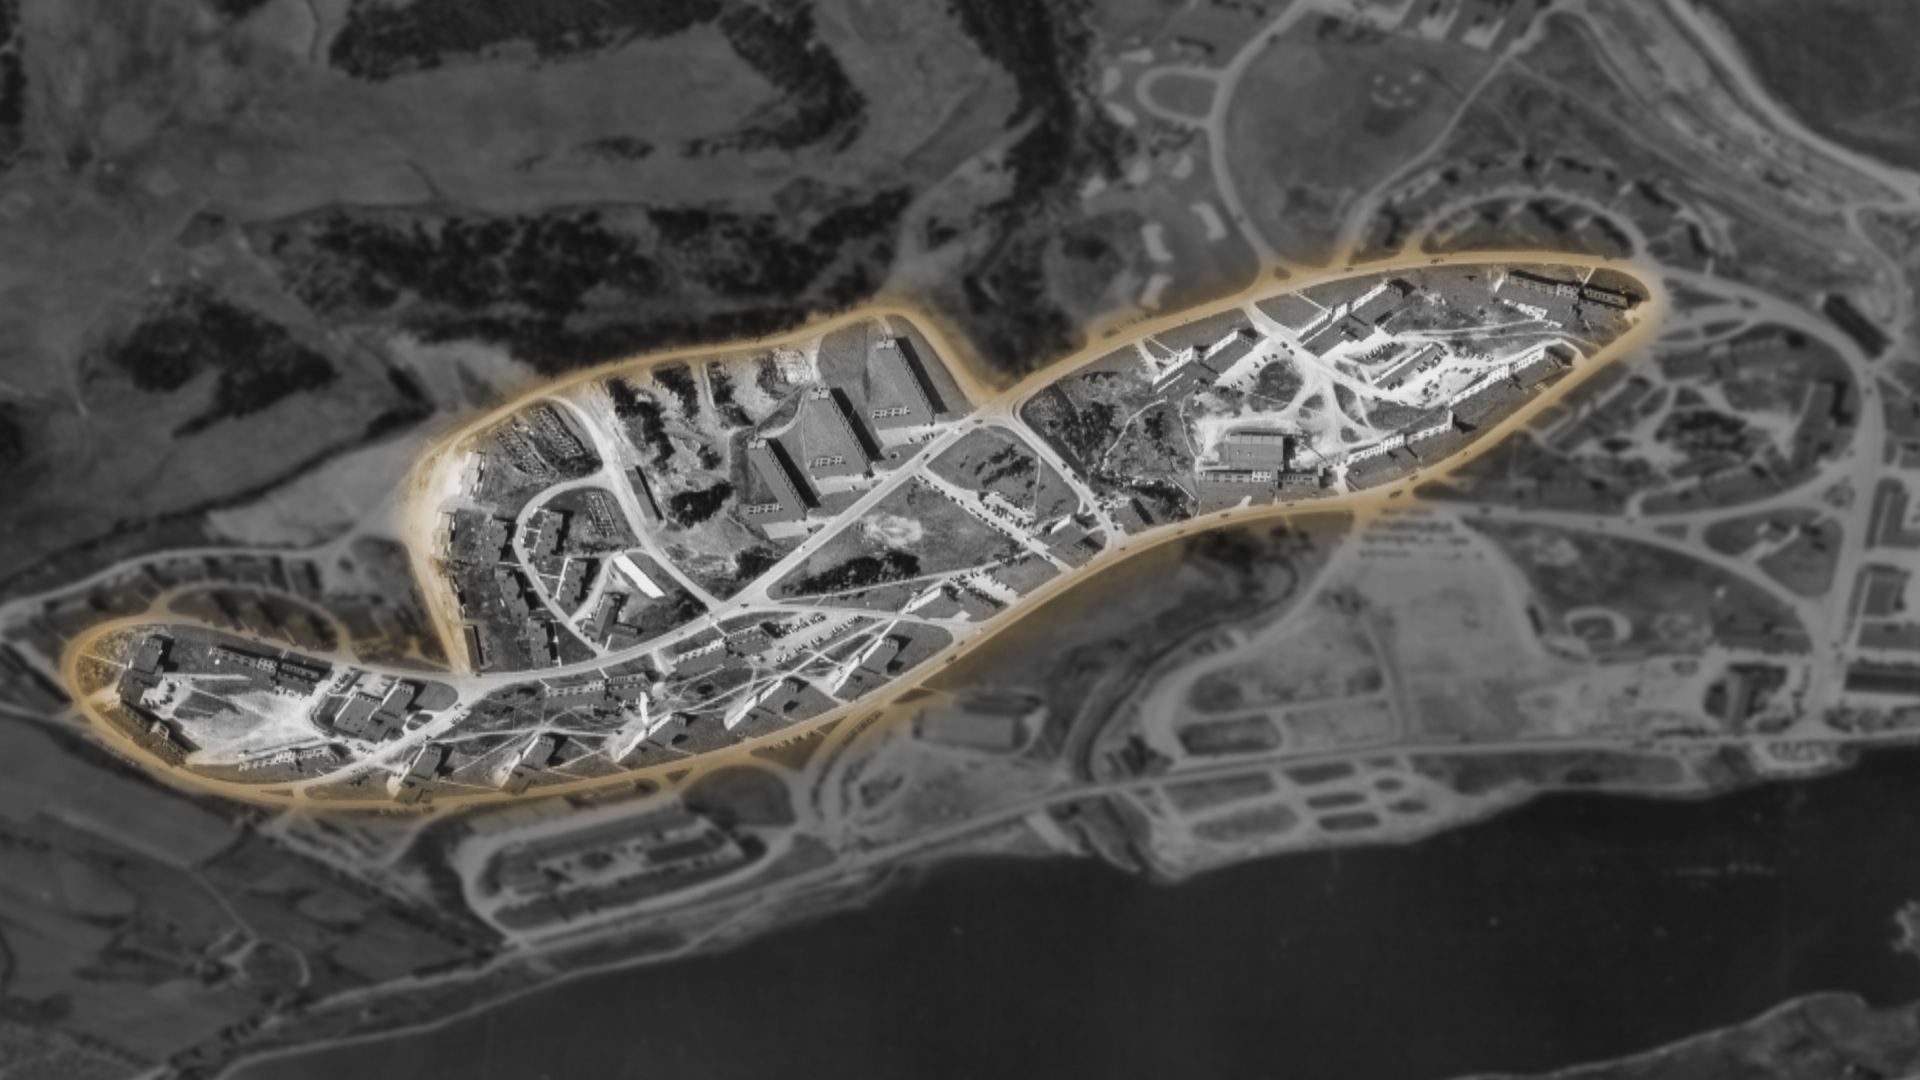 The Fort Pepperrell base at Quidi Vidi Lake, highlighted to show its distinct design. (MUN Maritime History Archive)